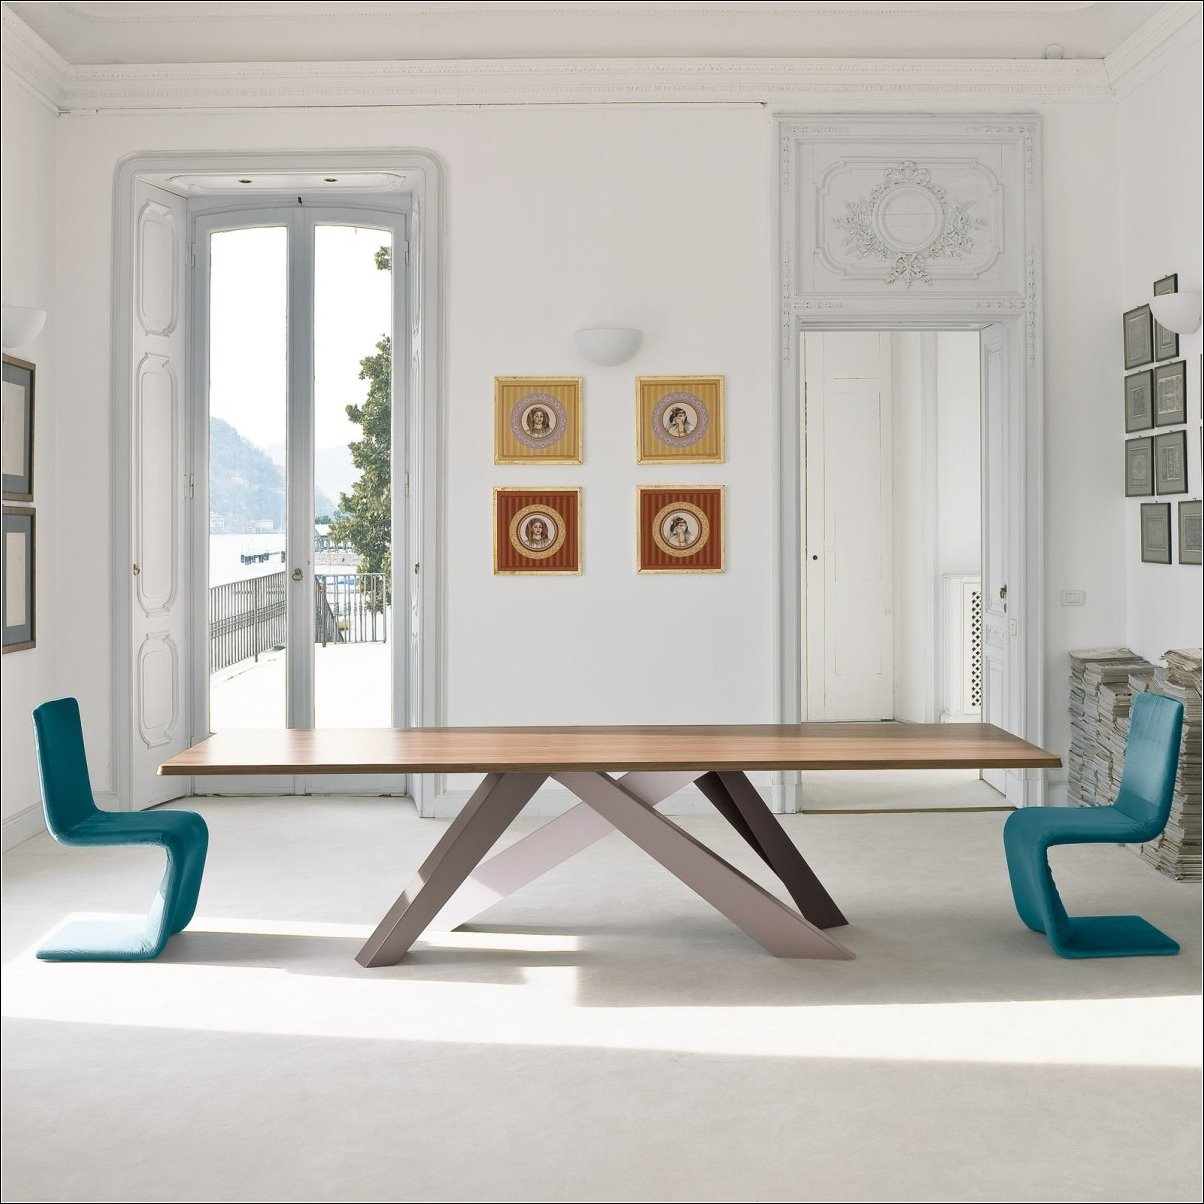 Arredaclick muebles italianos online mesas y sillas for Muebles italianos